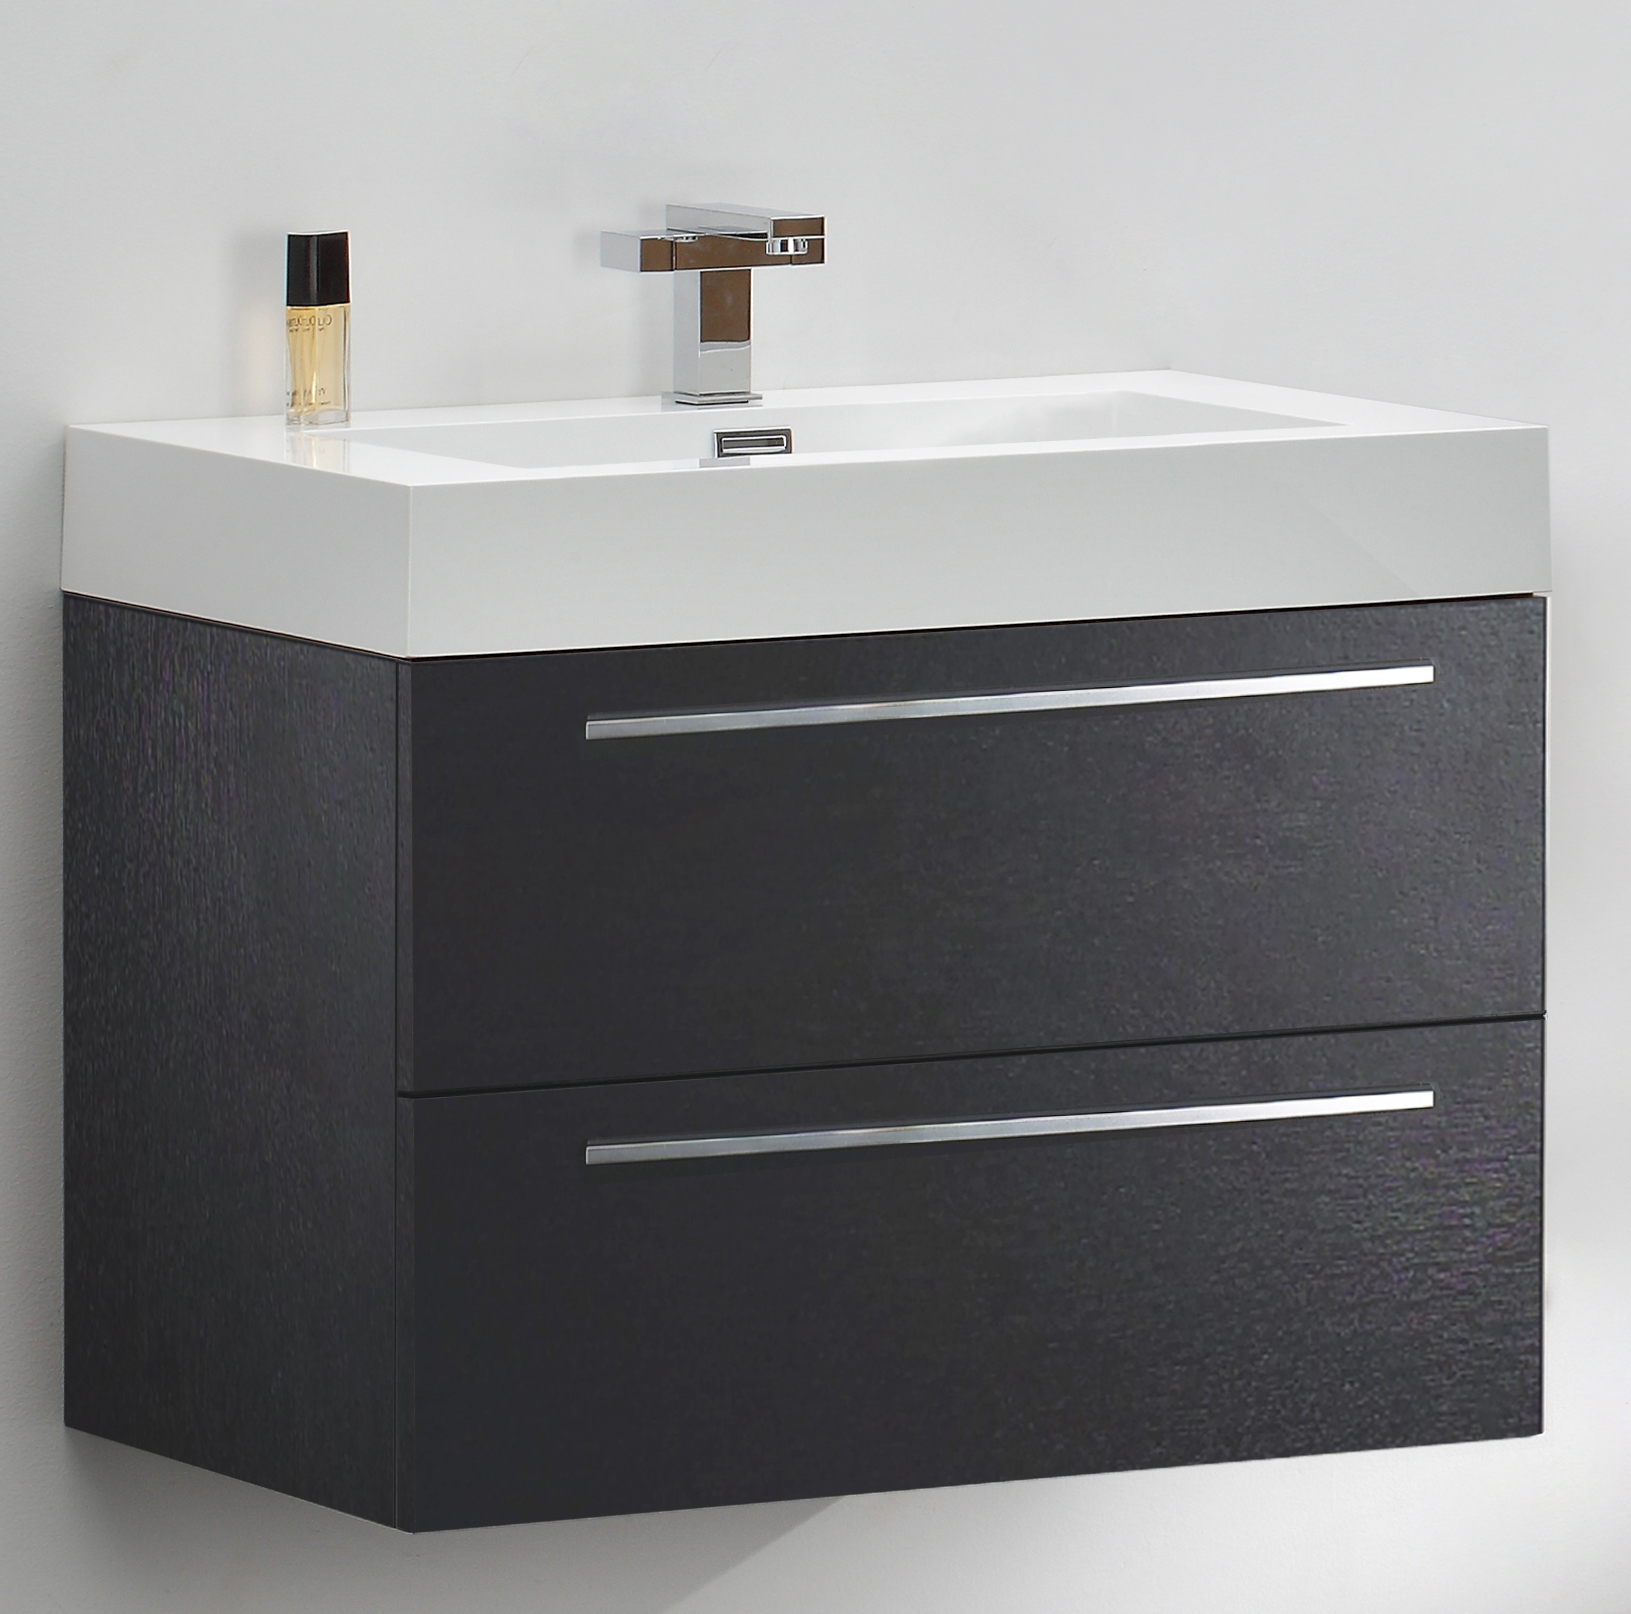 meuble de salle de bain t730 noir lavabo et meuble sous vasque ebay. Black Bedroom Furniture Sets. Home Design Ideas